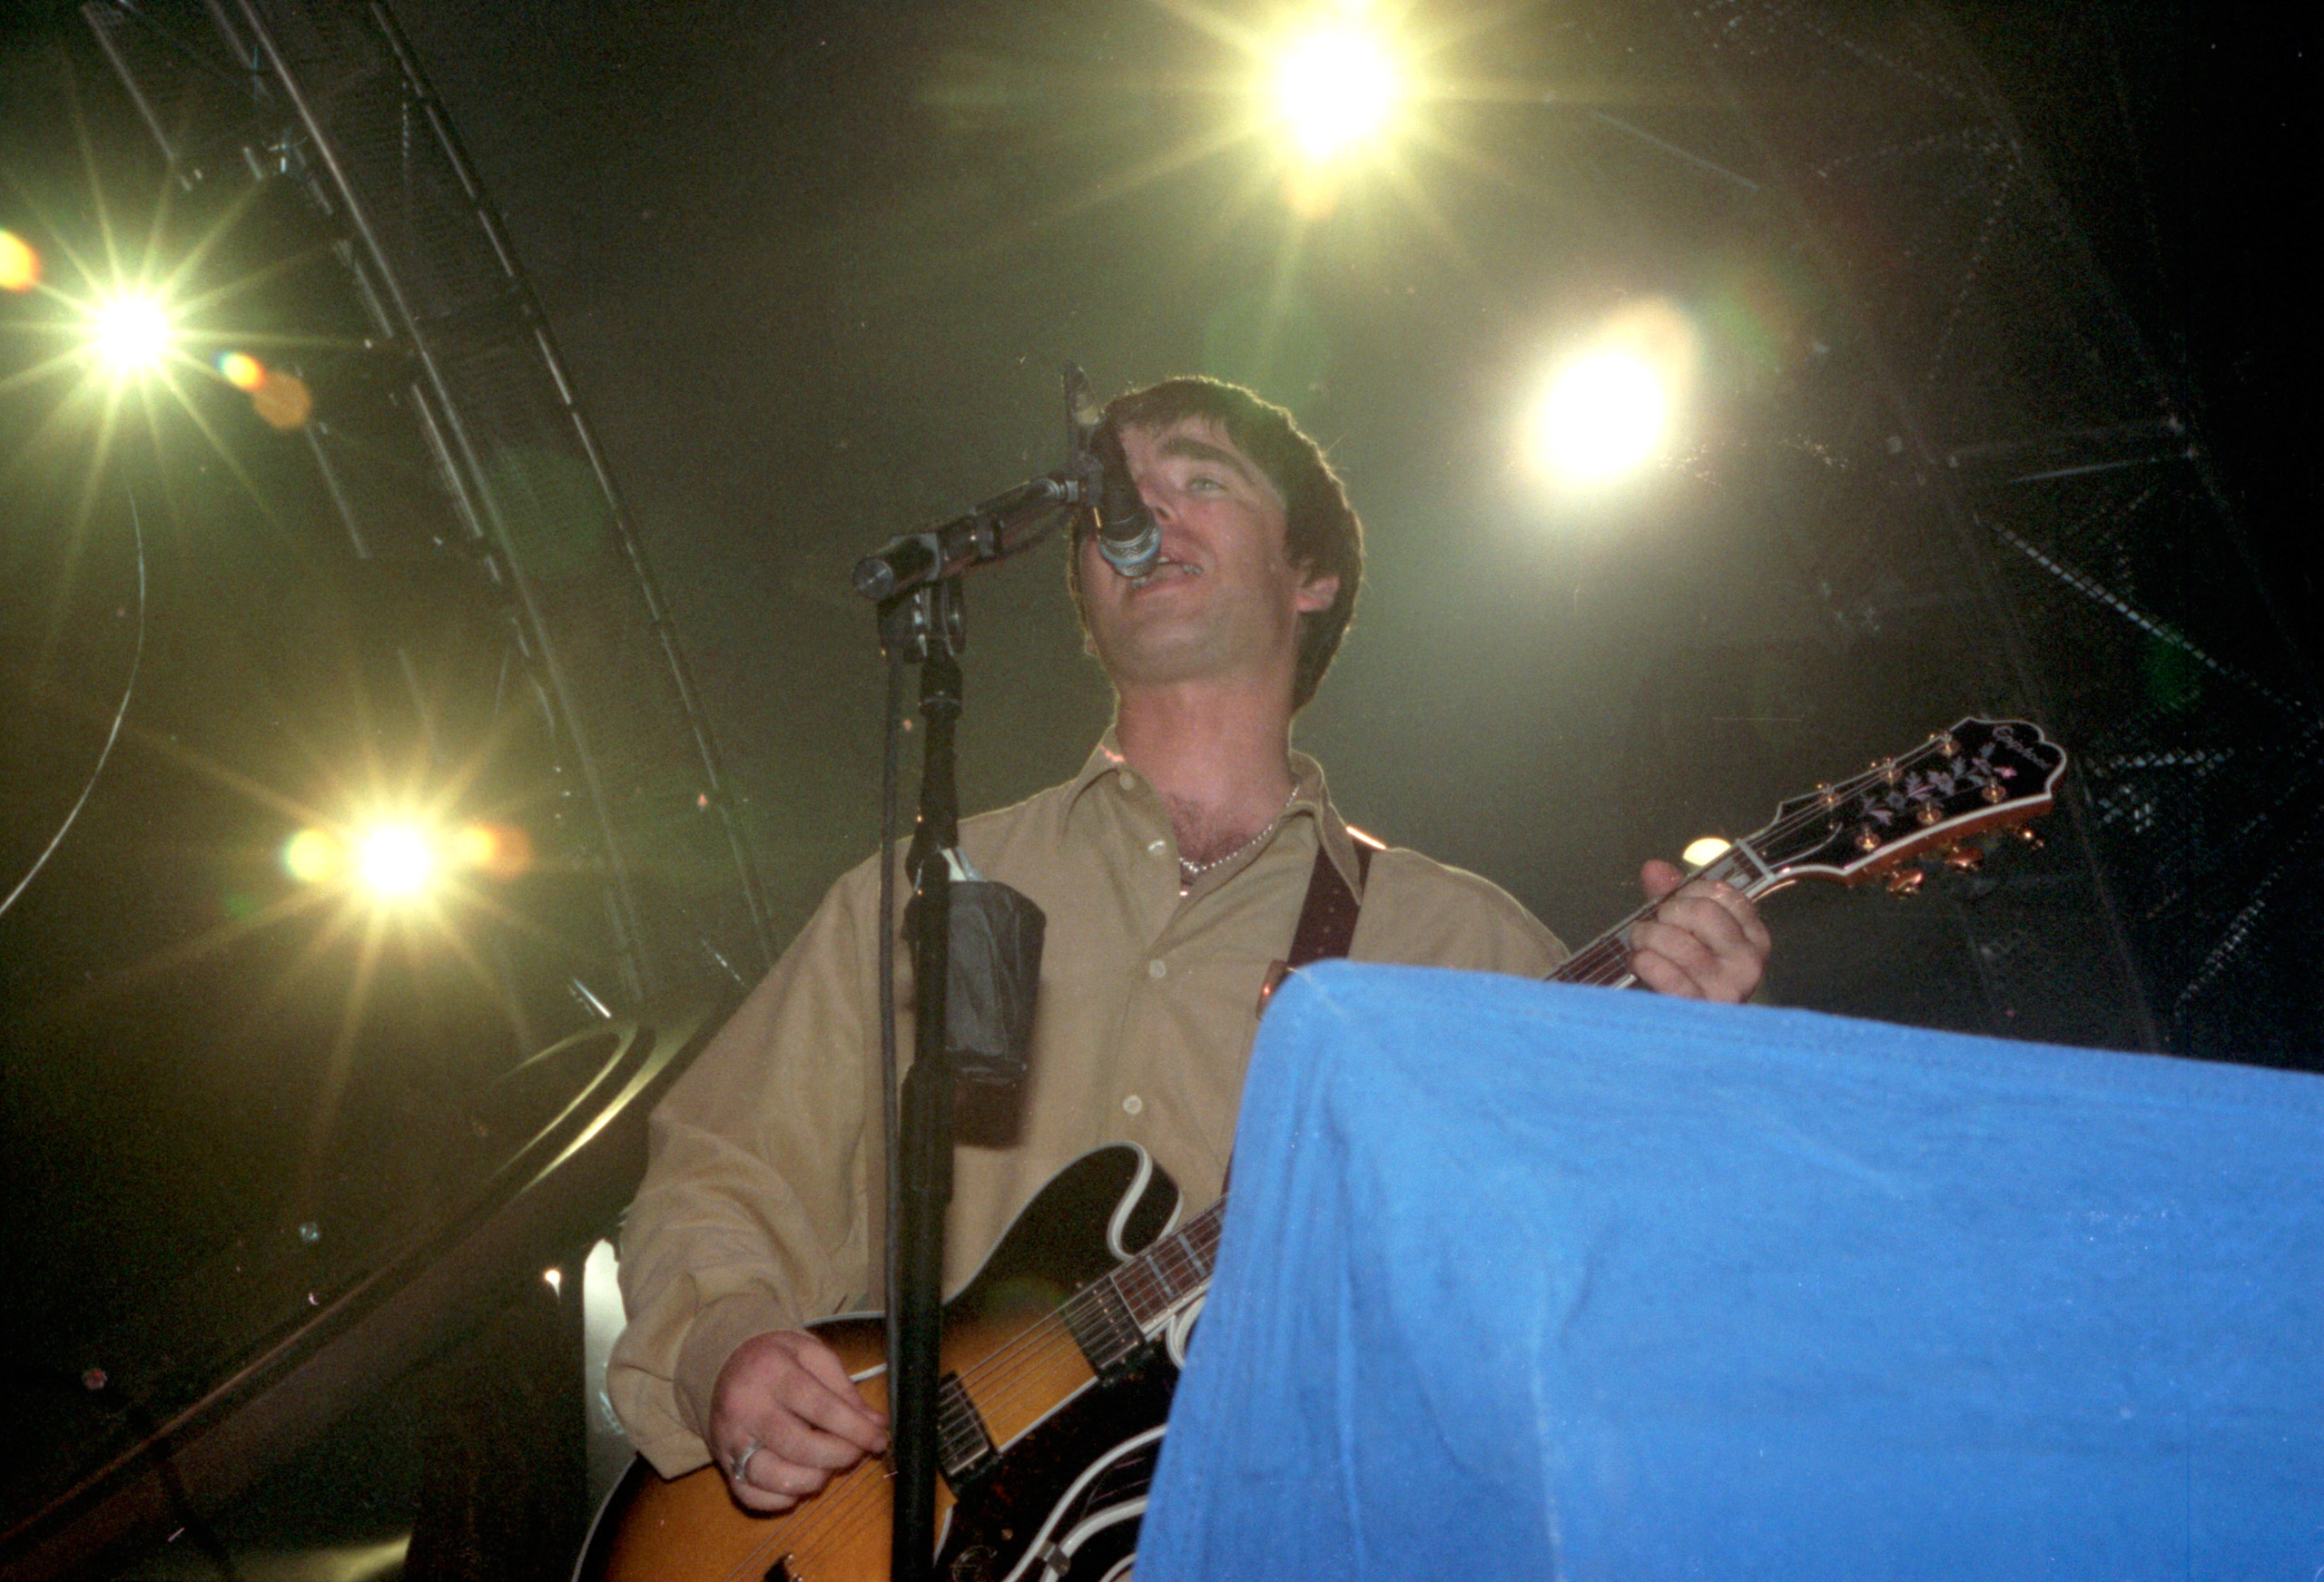 Oasis gig in 1997. Picture by Kami Thomson